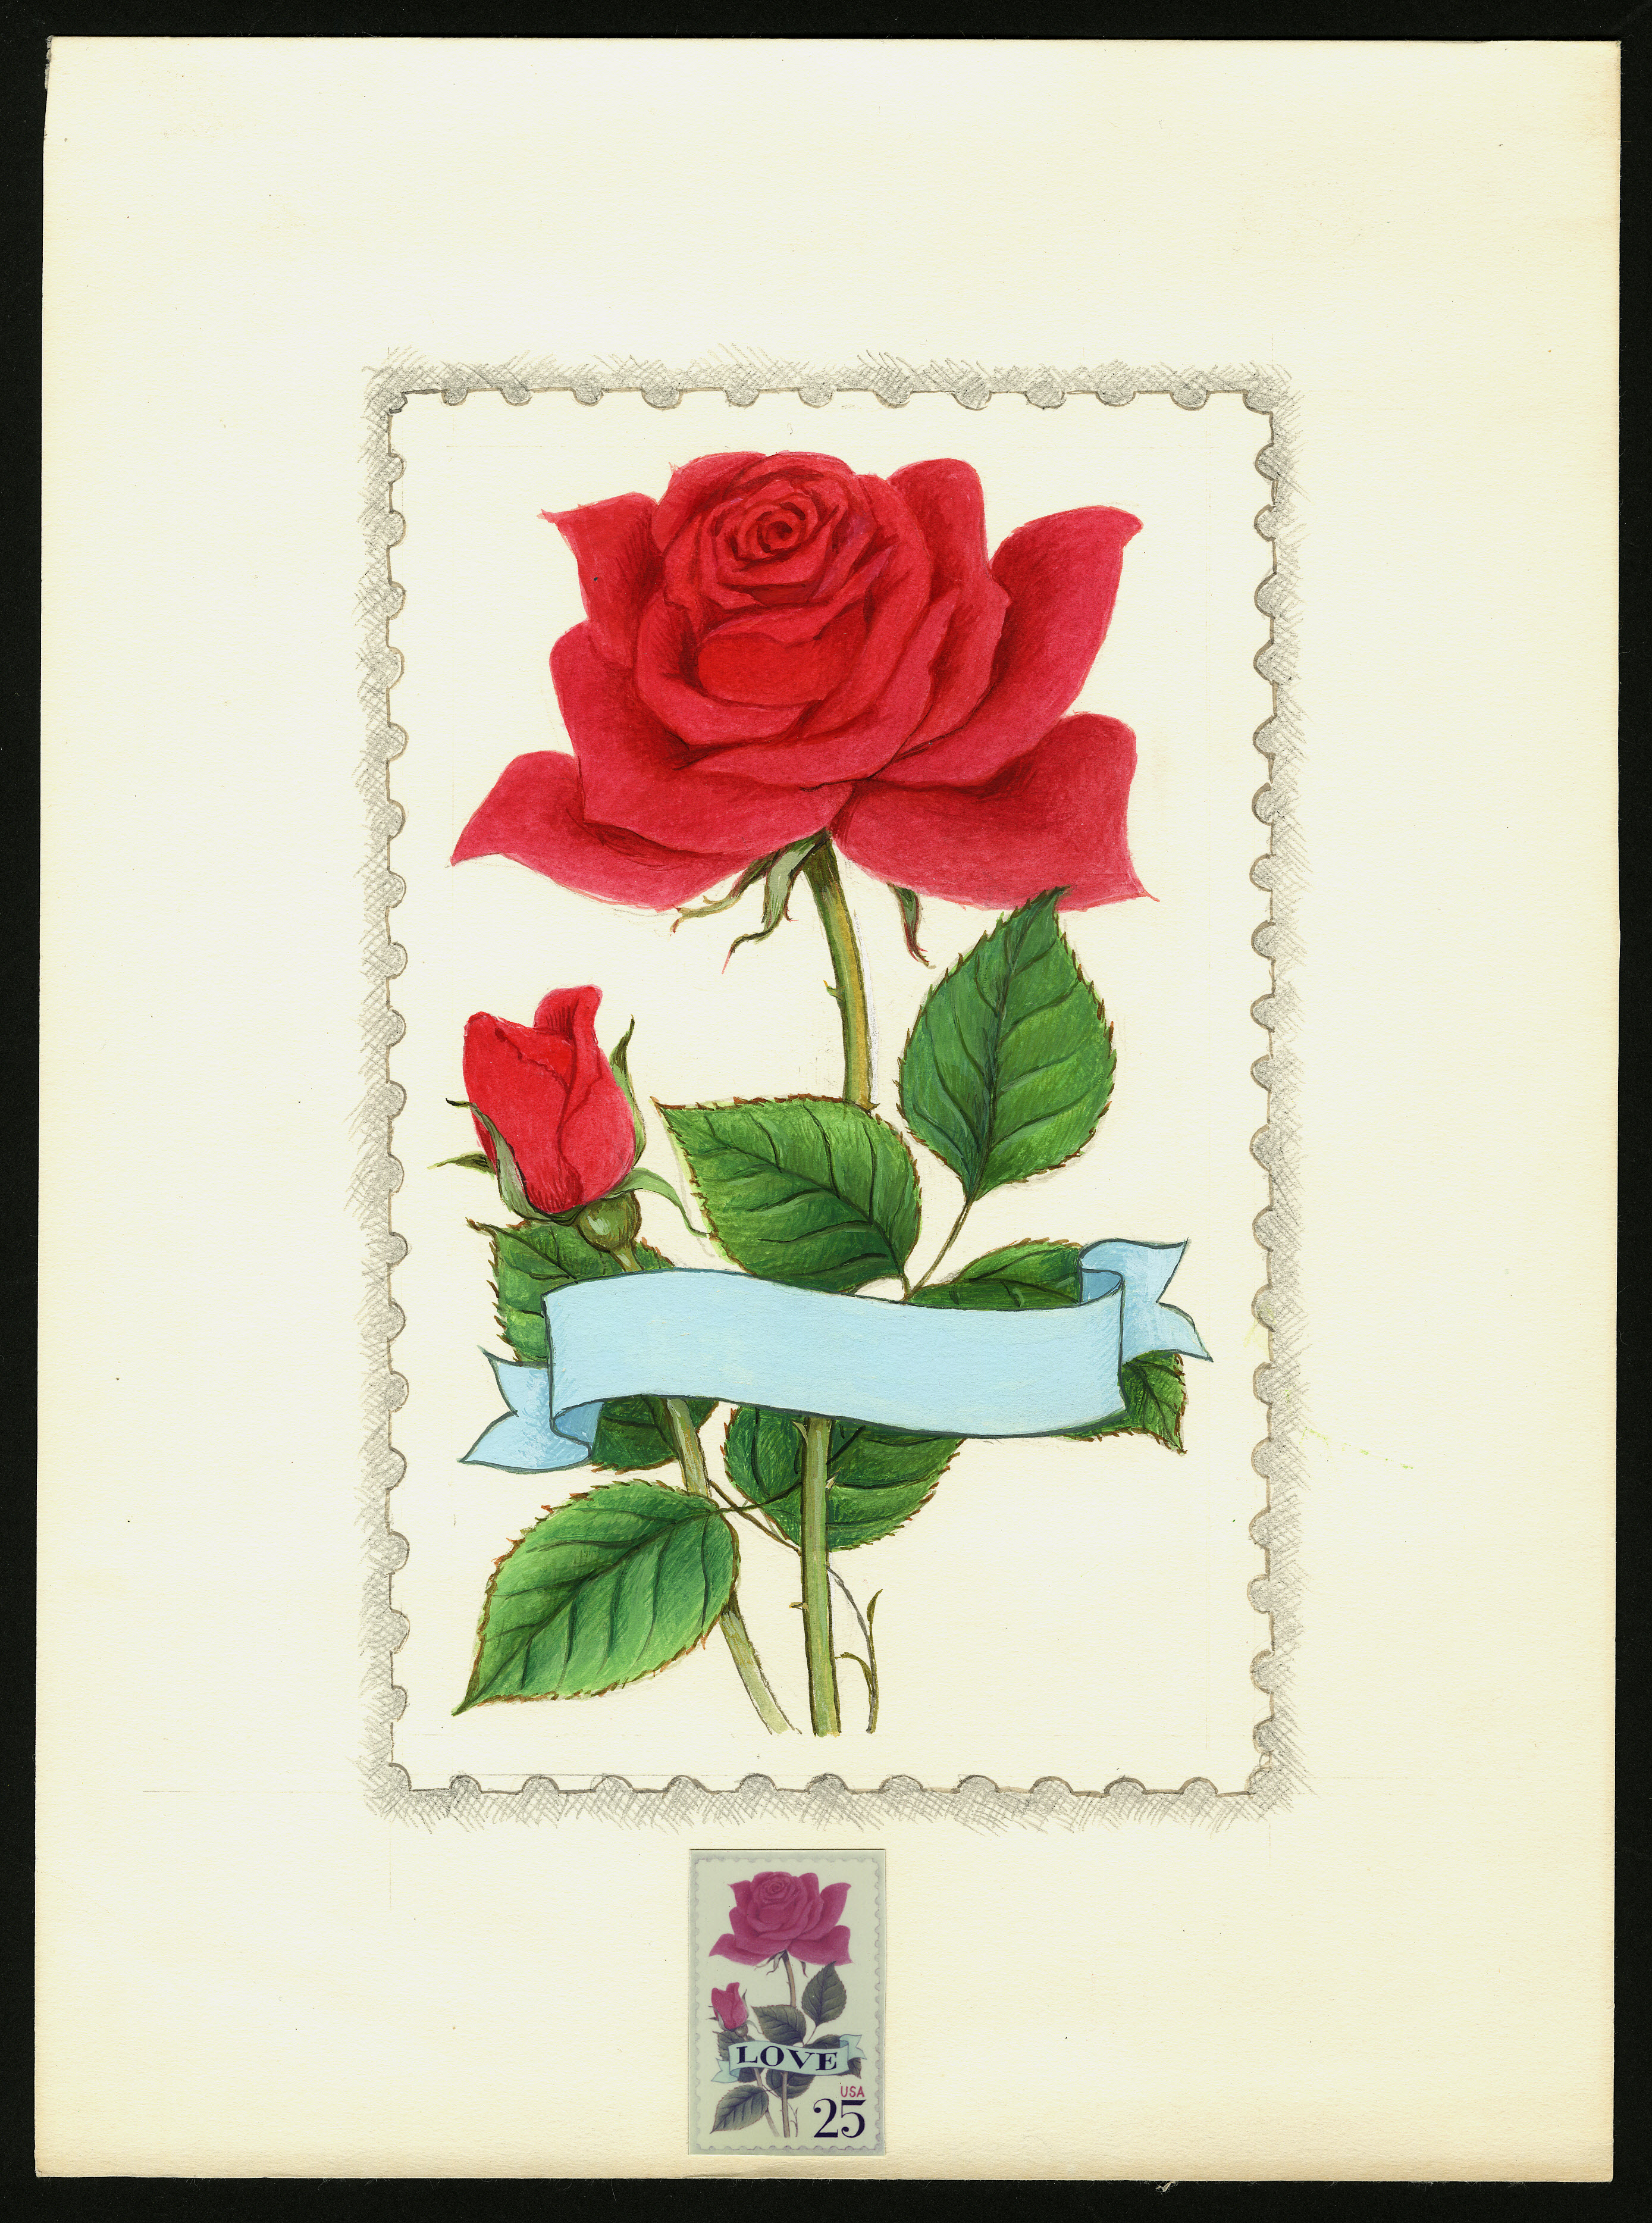 National Postal Museum to Open Art Exhibition Celebrating  Beautiful Blooms on Stamps